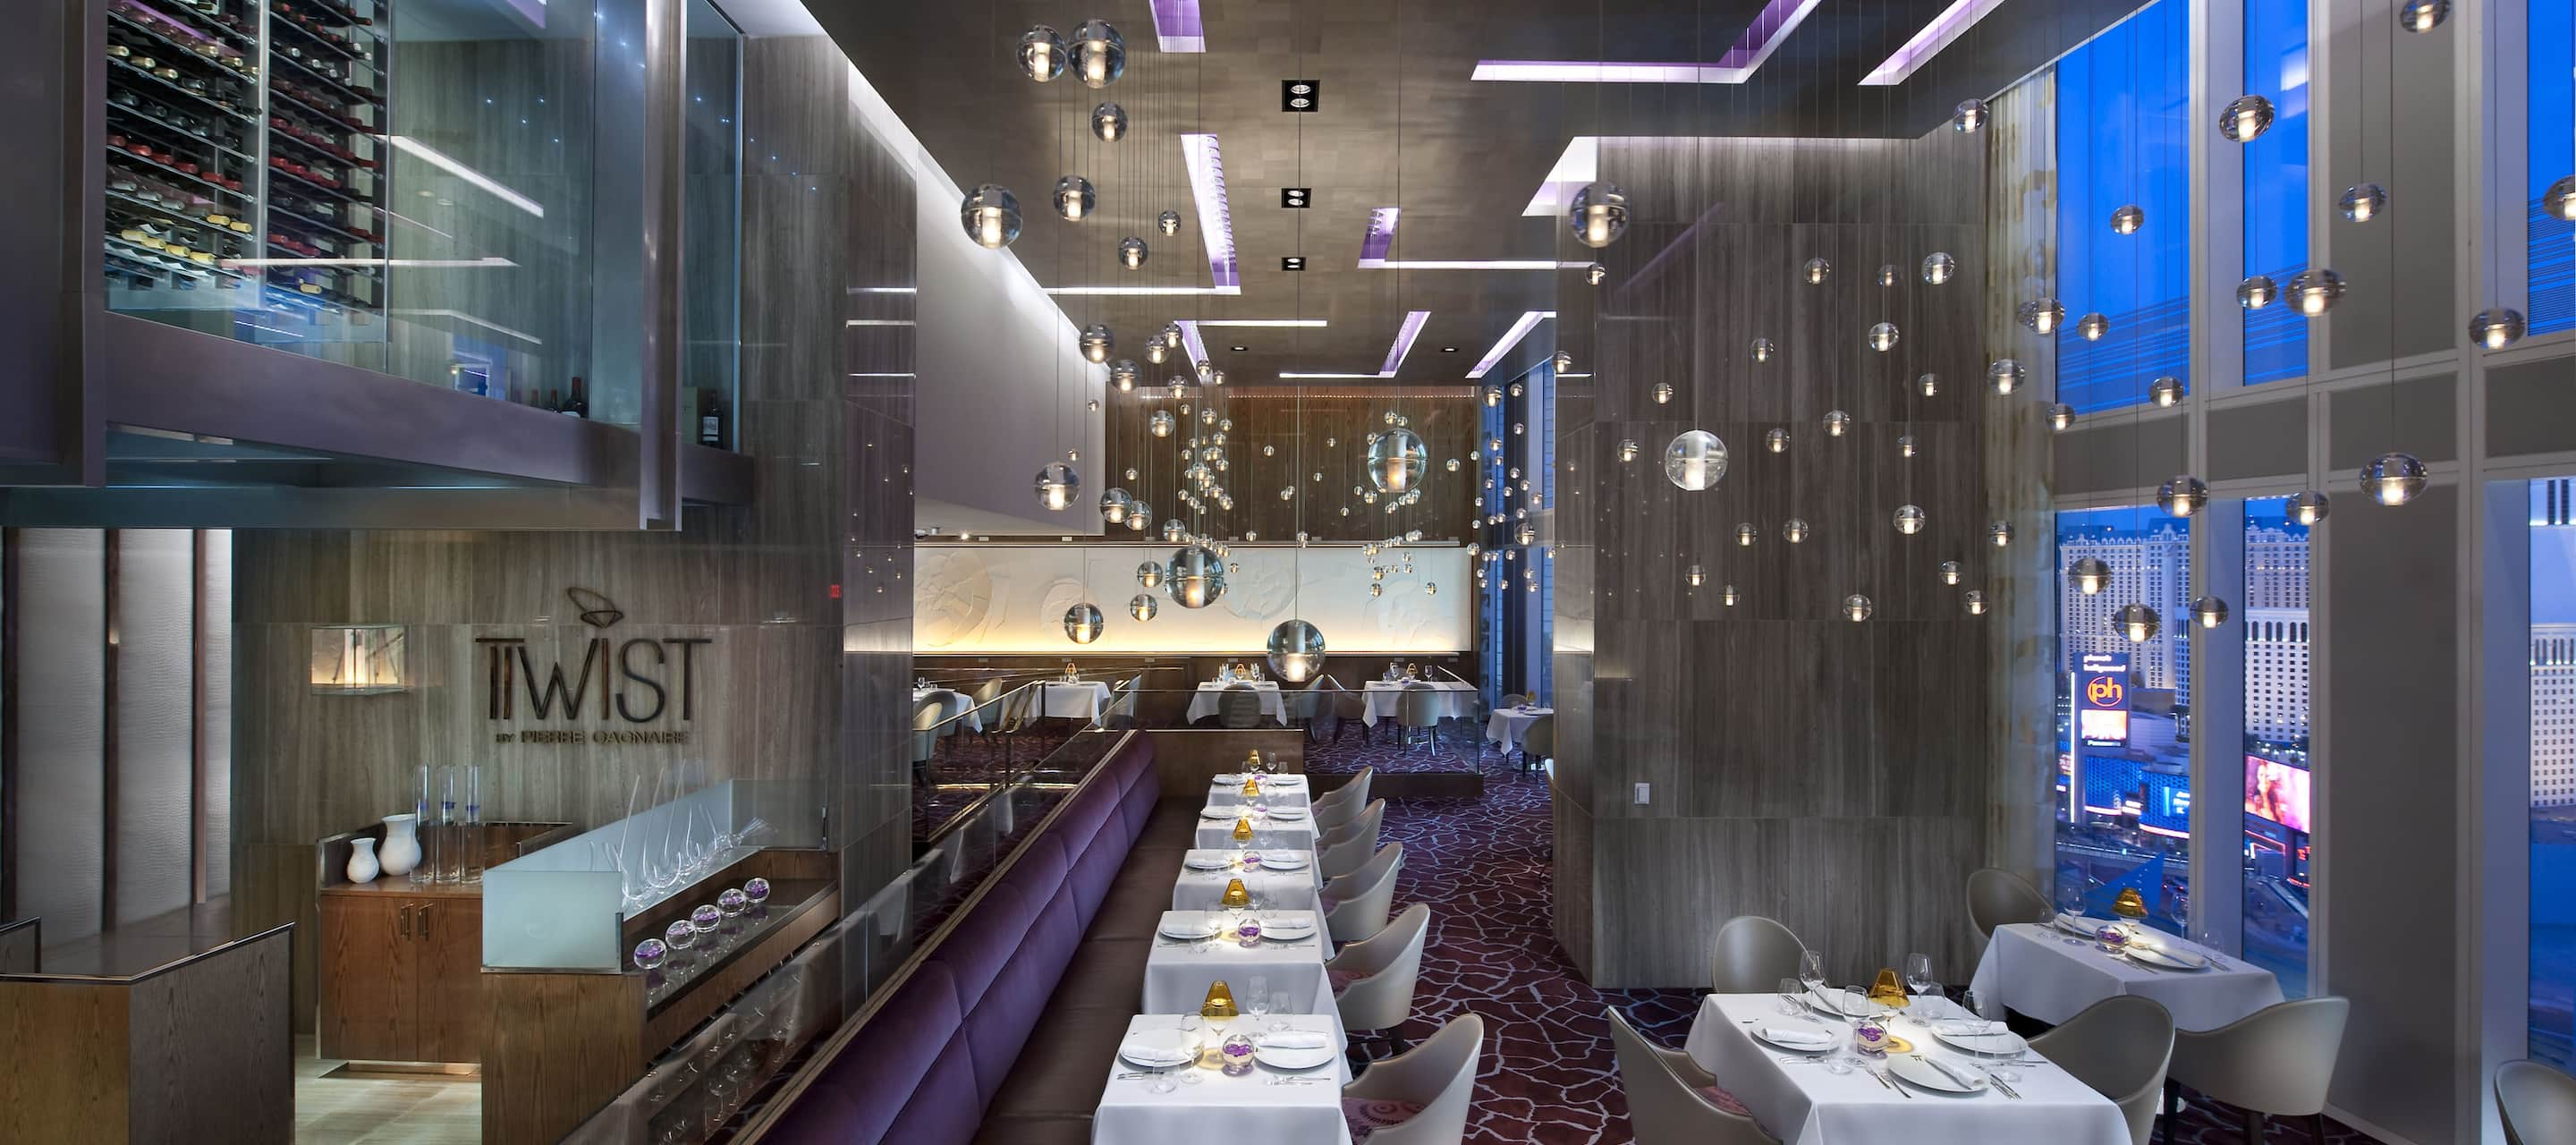 Twist By Pierre Gagnaire Restaurants On The Strip